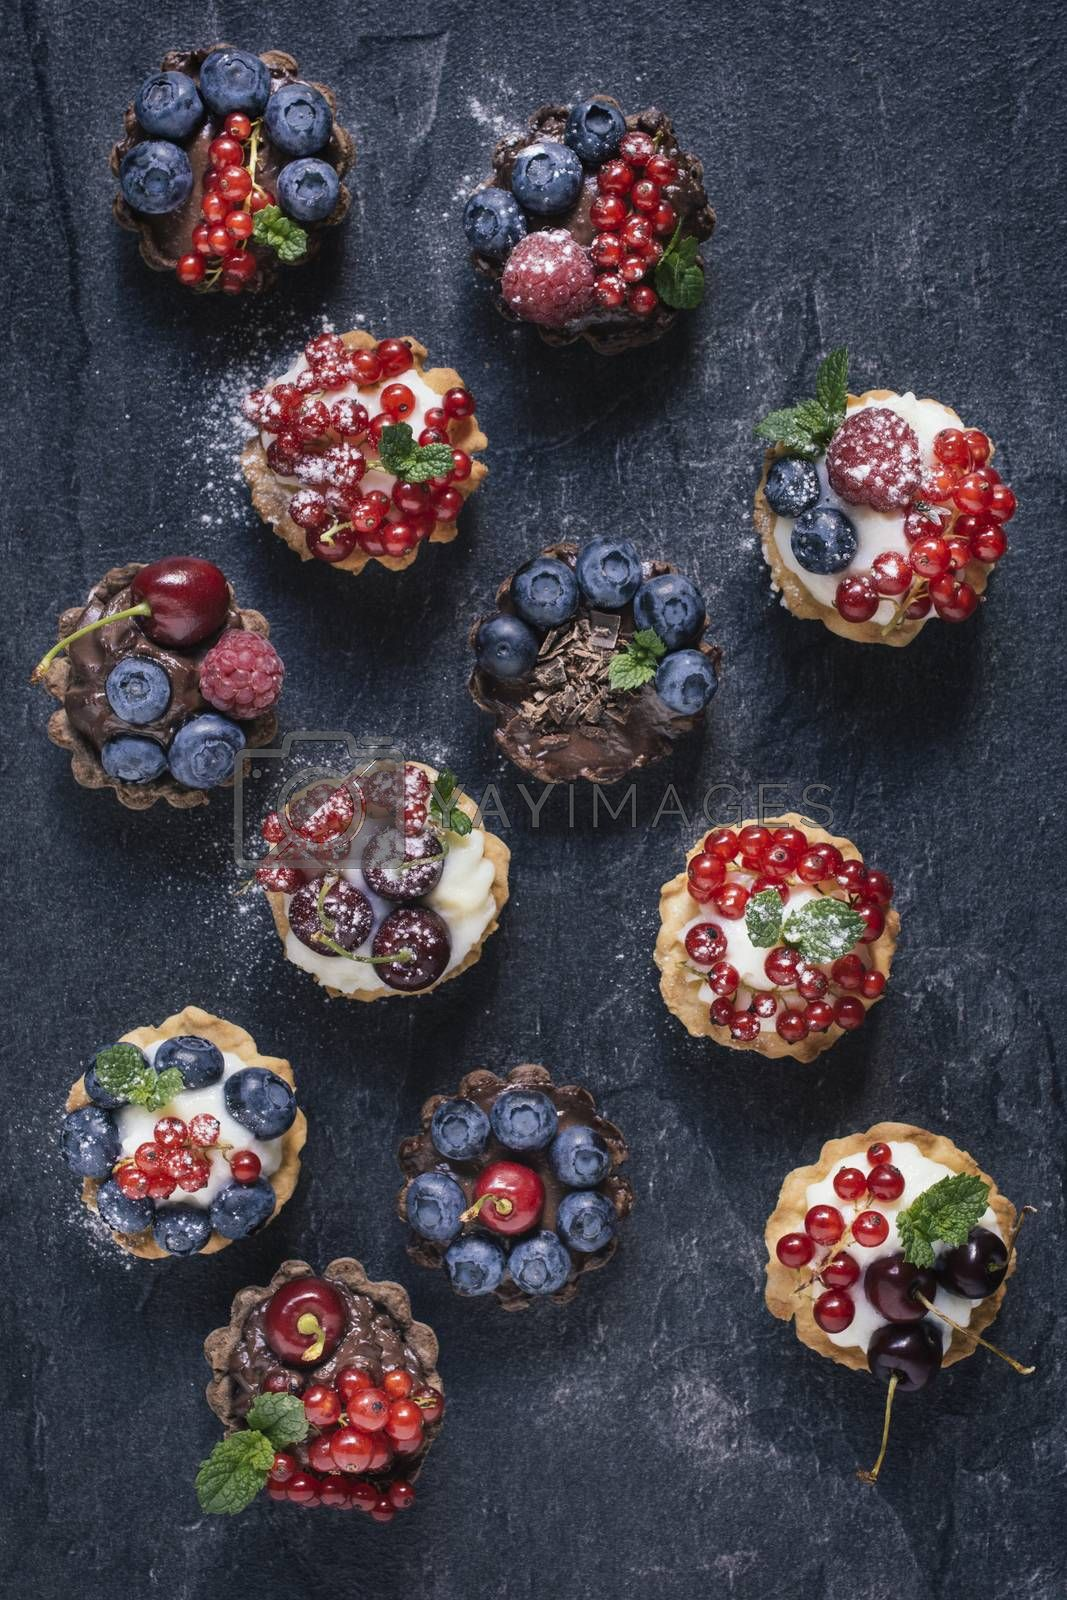 Vanilla and chocolate pudding in mini tarts with berry fruits from above